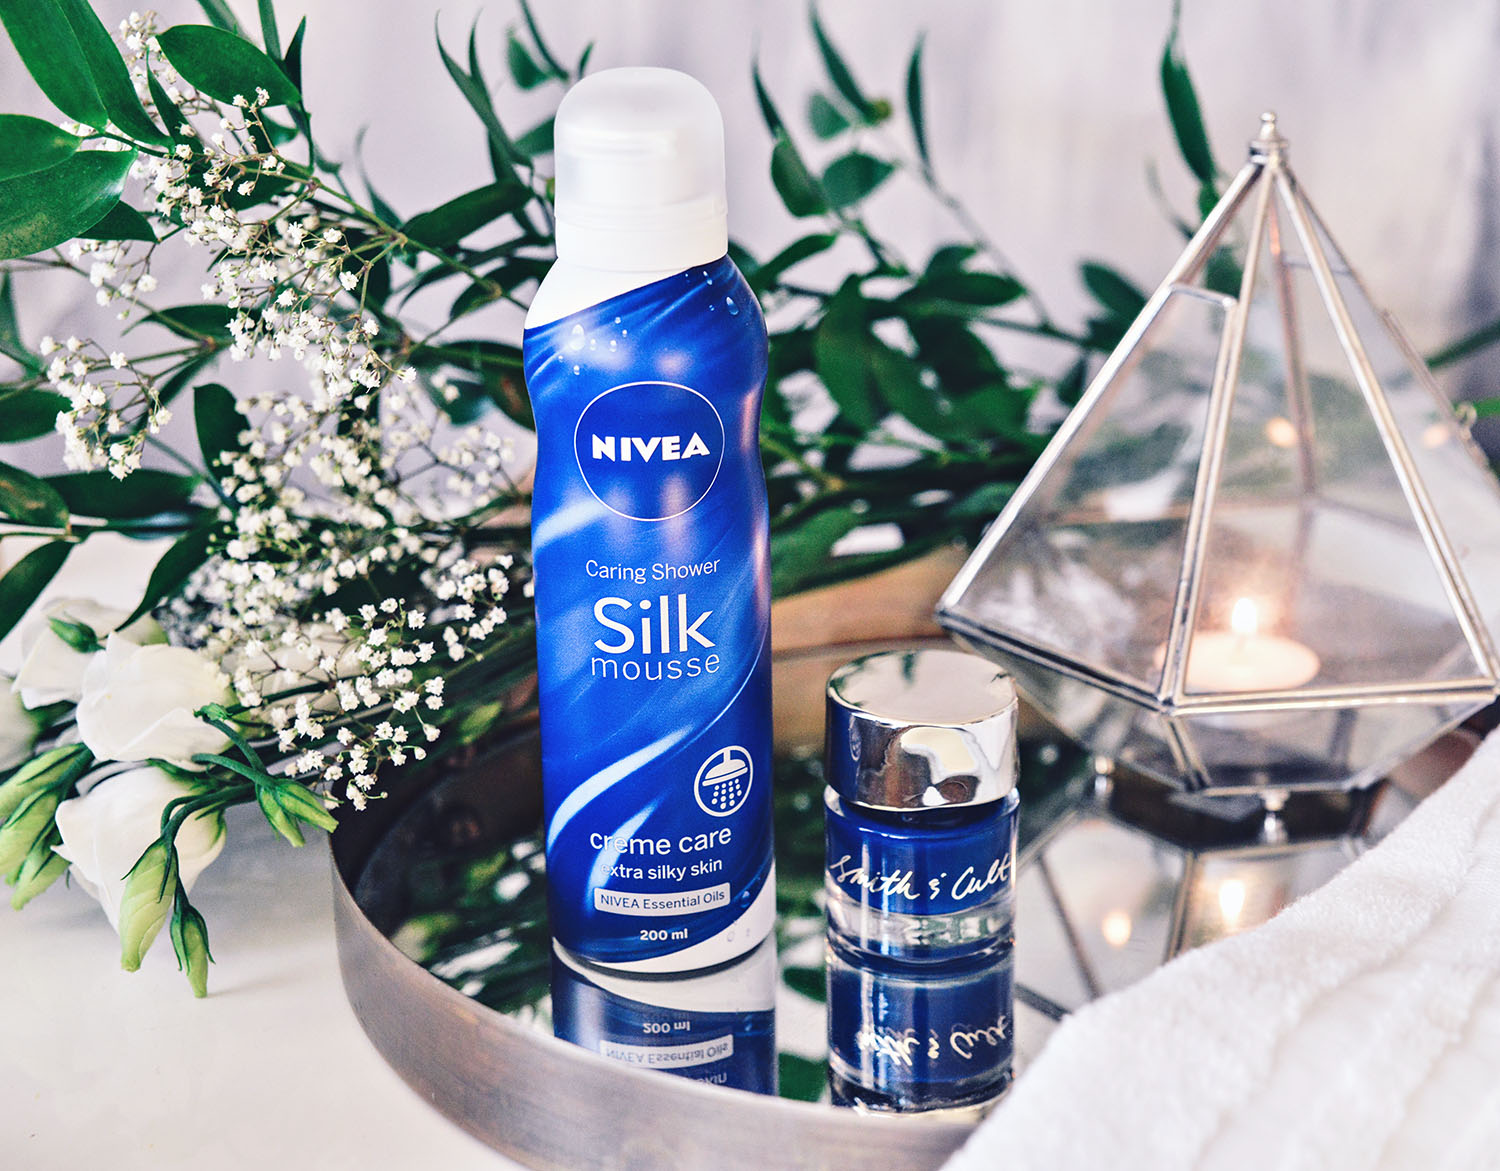 Vardagslyx med Nivea Caring Shower Silk Mousse